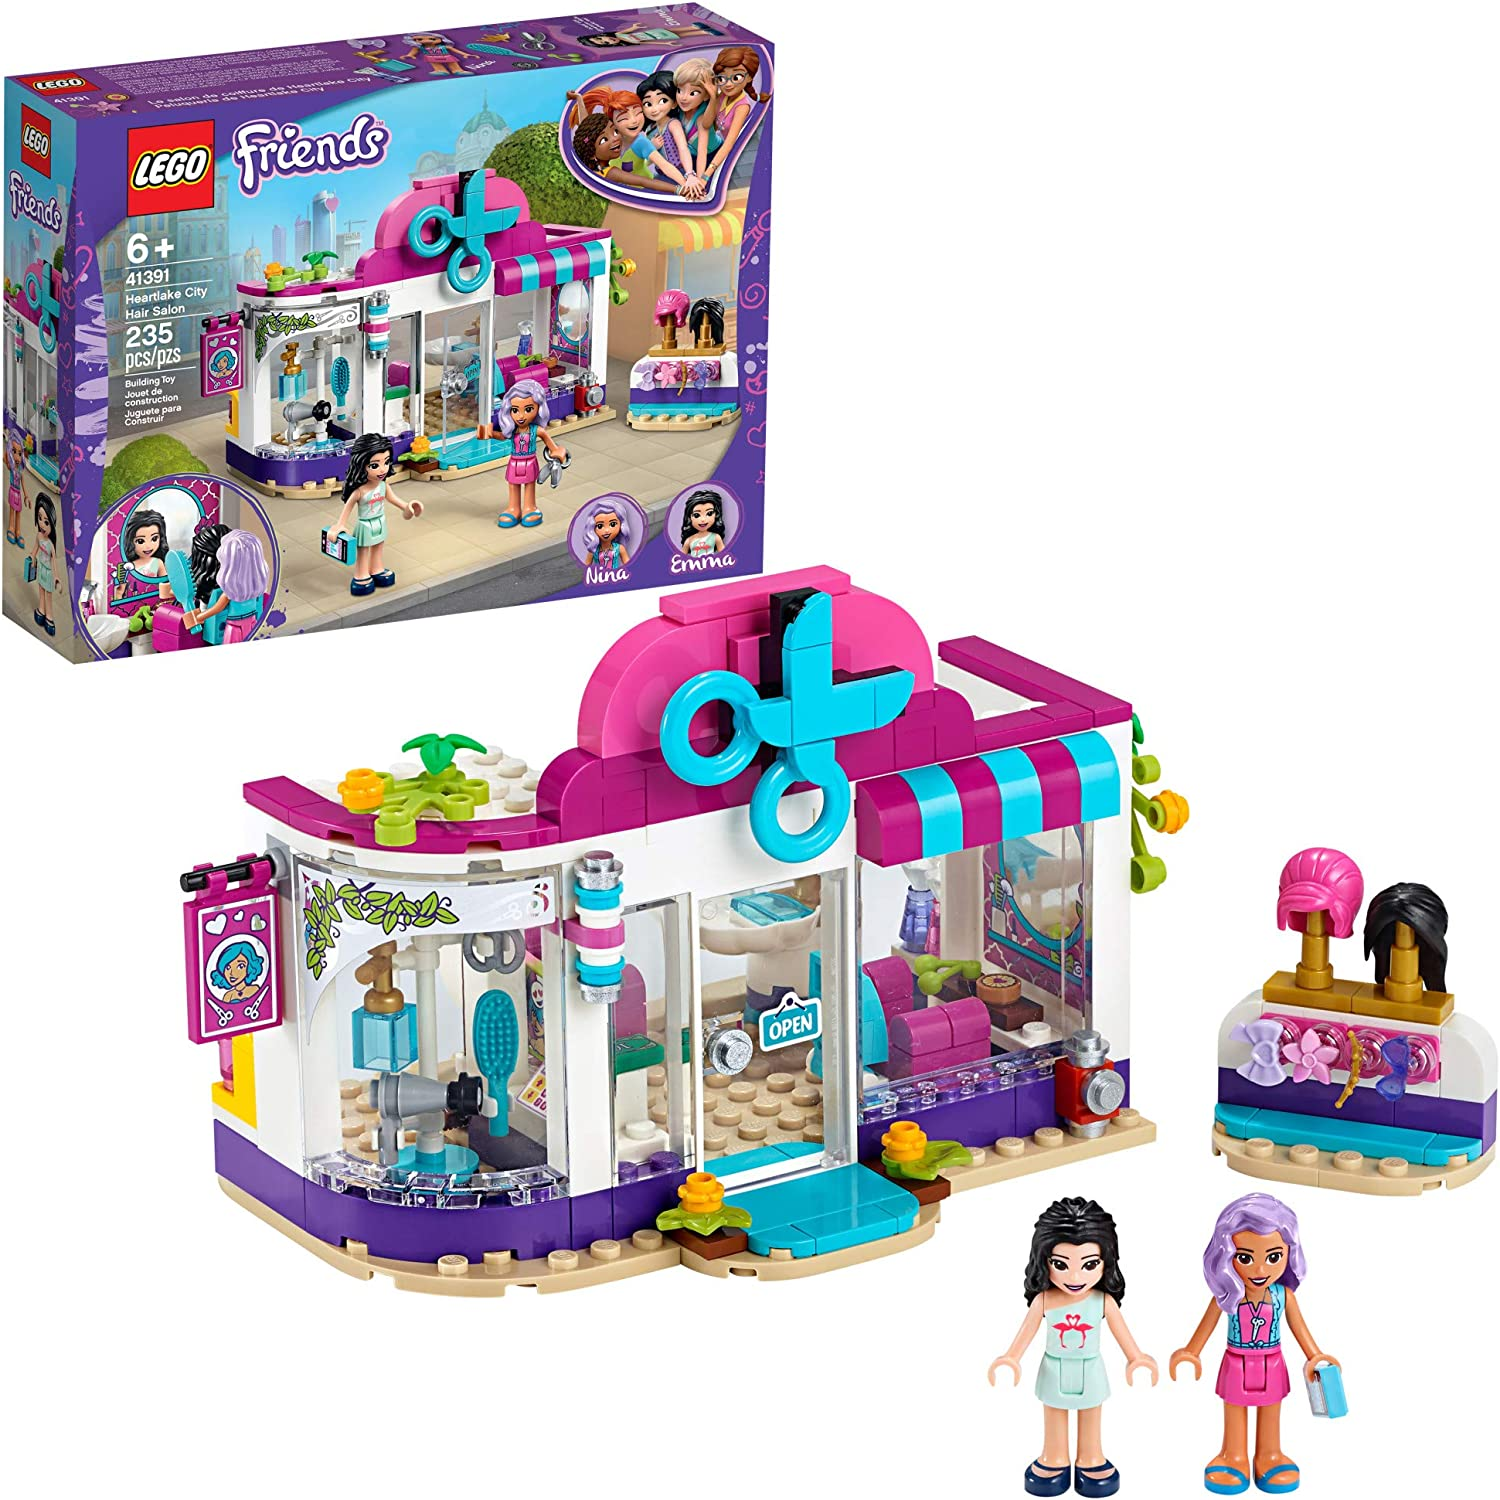 LEGO Friends Heartlake City Play Hair Salon Fun Toy 41391 Building Kit, Featuring Friends Character Emma, New 2020 (235 Pieces)